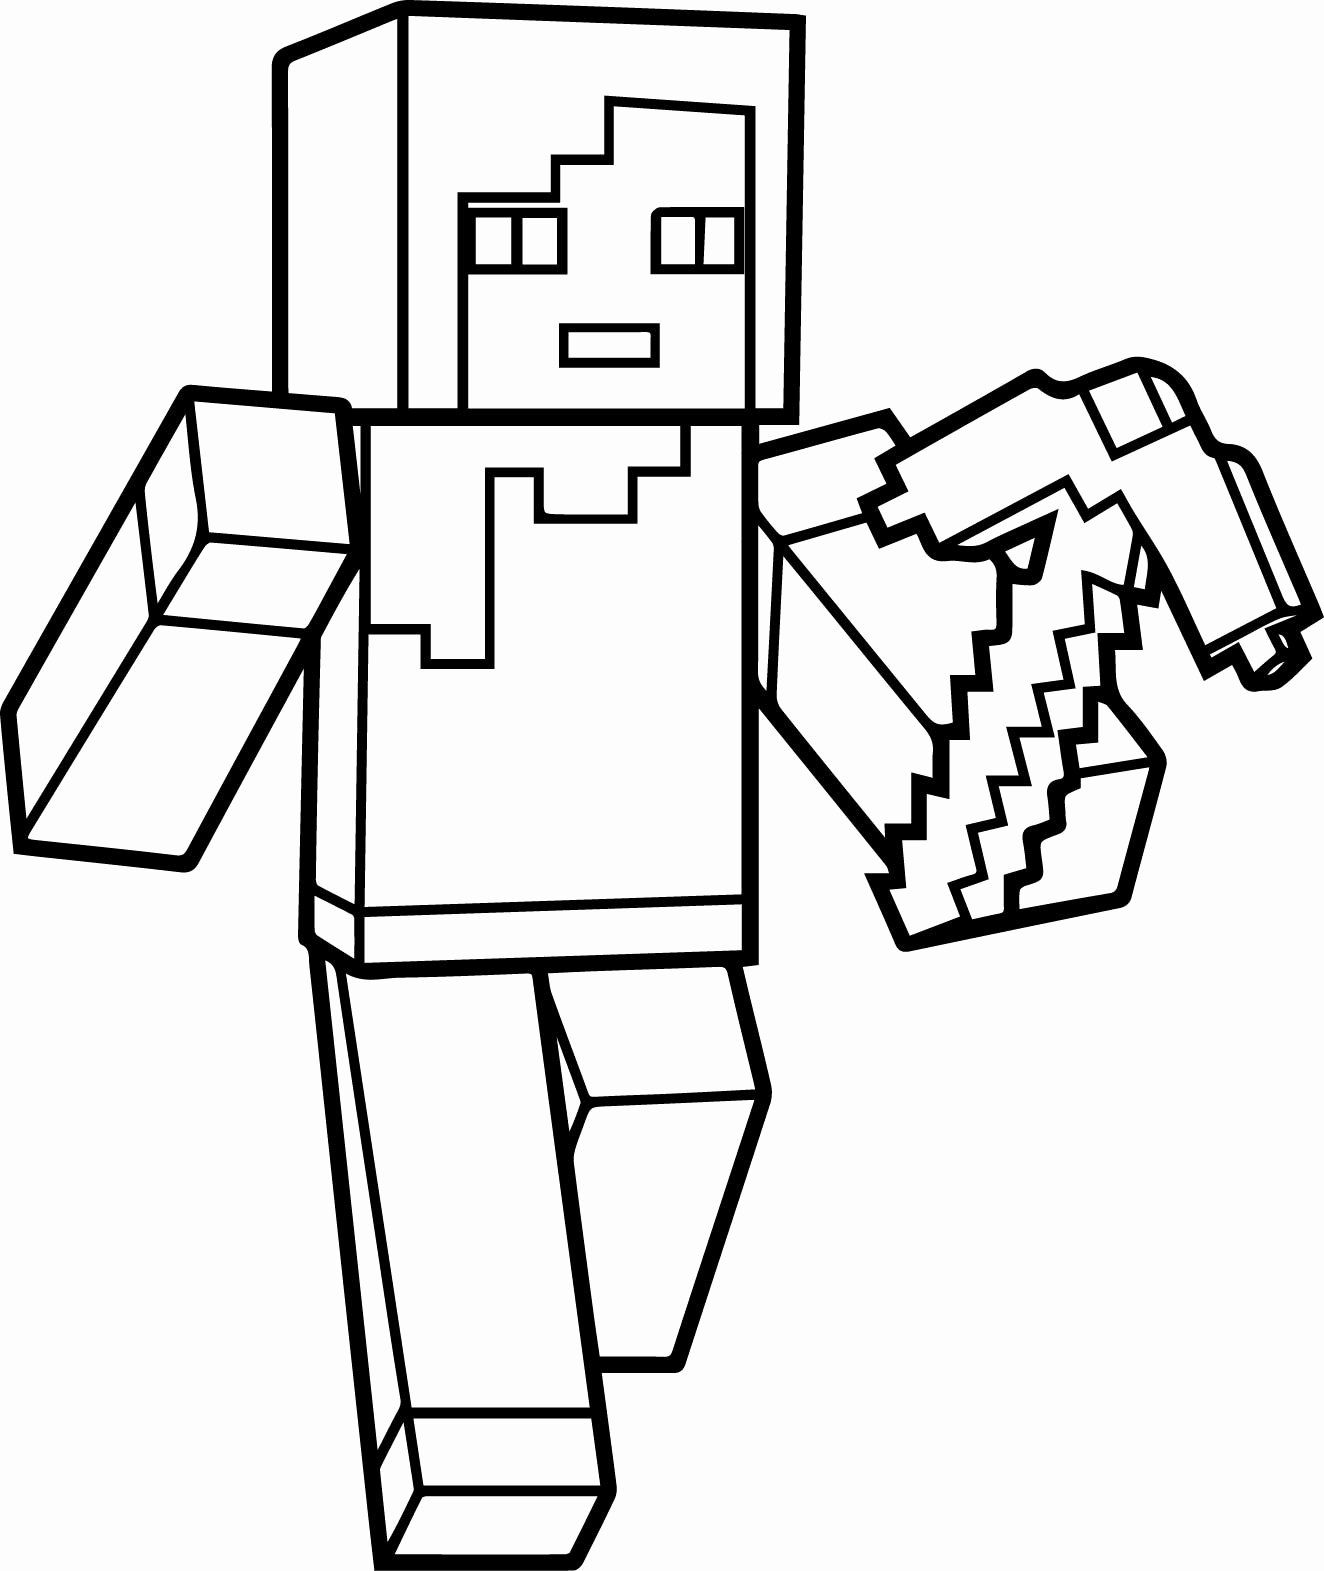 Minecraft Coloring App Printables Minecraft Coloring Pages Minecraft Printables Free Printable Coloring Pages